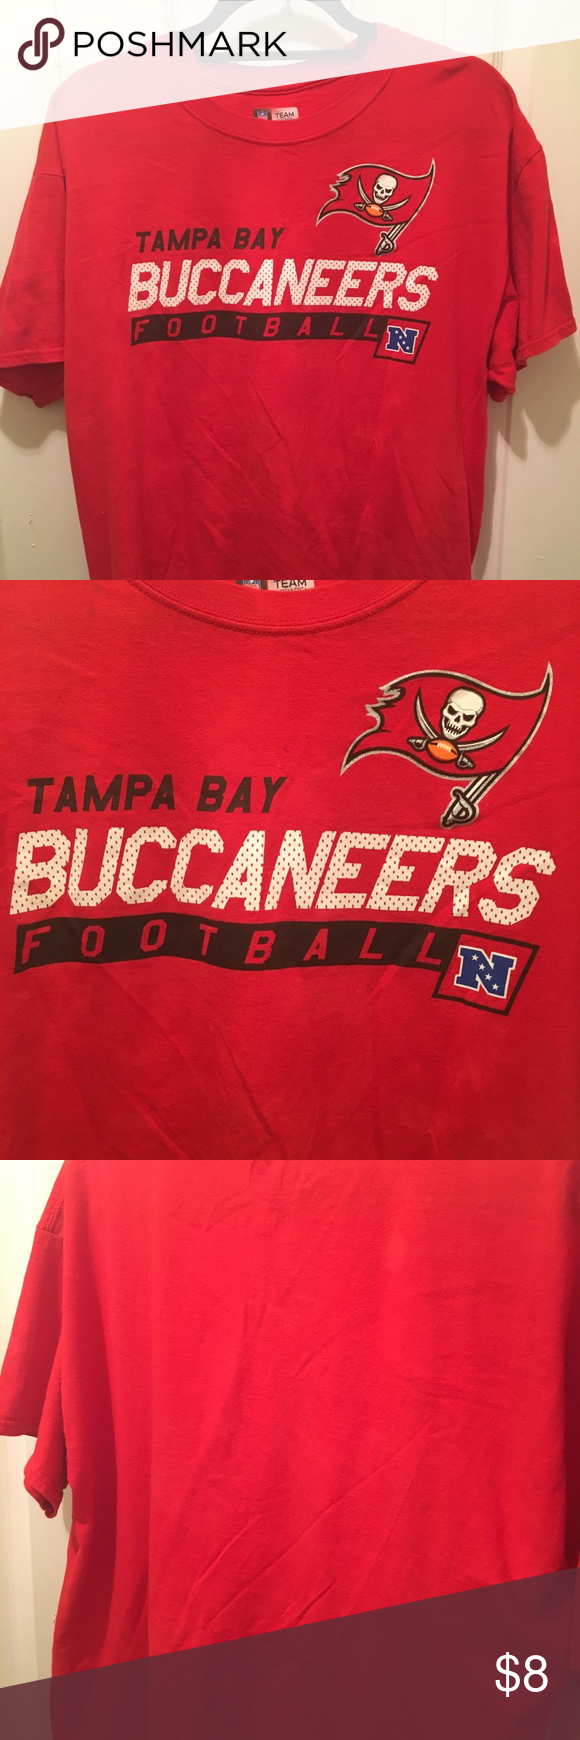 Men S Large Tampa Bay Buccaneers Shirt Gently Pre Owned Condition Nfl Team Apparel Men S Size Large Solid Red Color Tampa Bay Buc Team Apparel Nfl Team Apparel